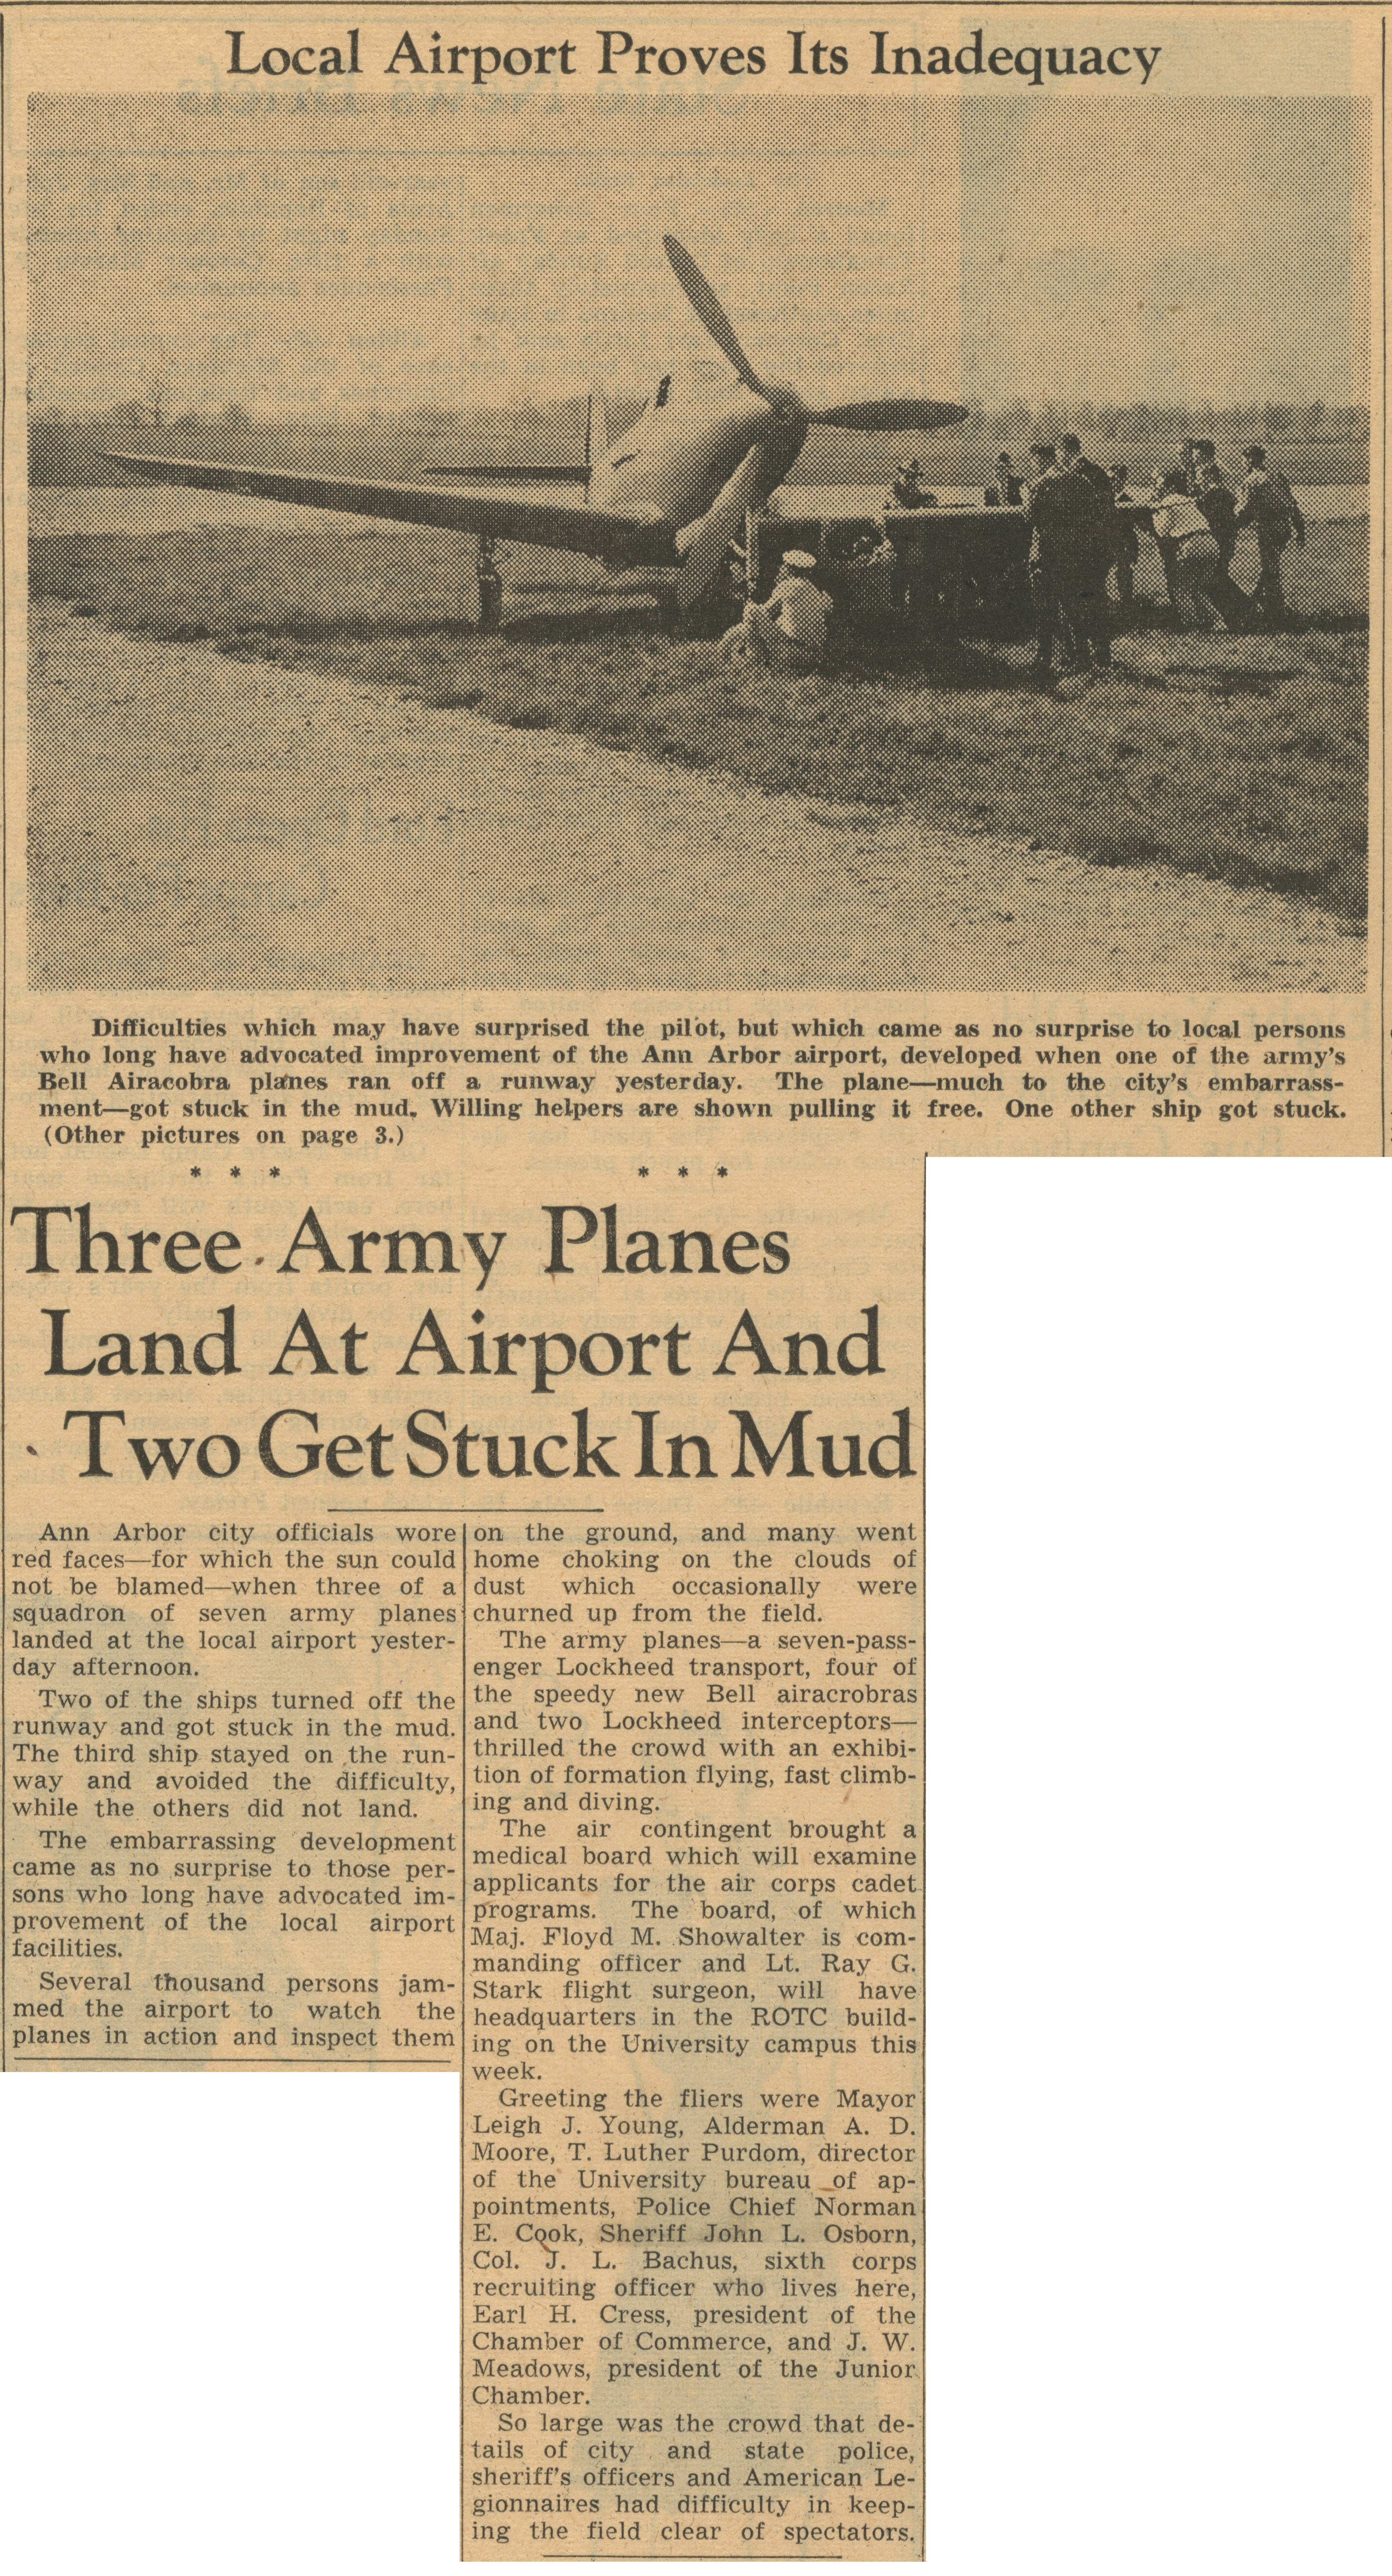 Local Airport Proves Its Inadequacy: Three Army Planes Land At Airport And Two Get Stuck In Mud image